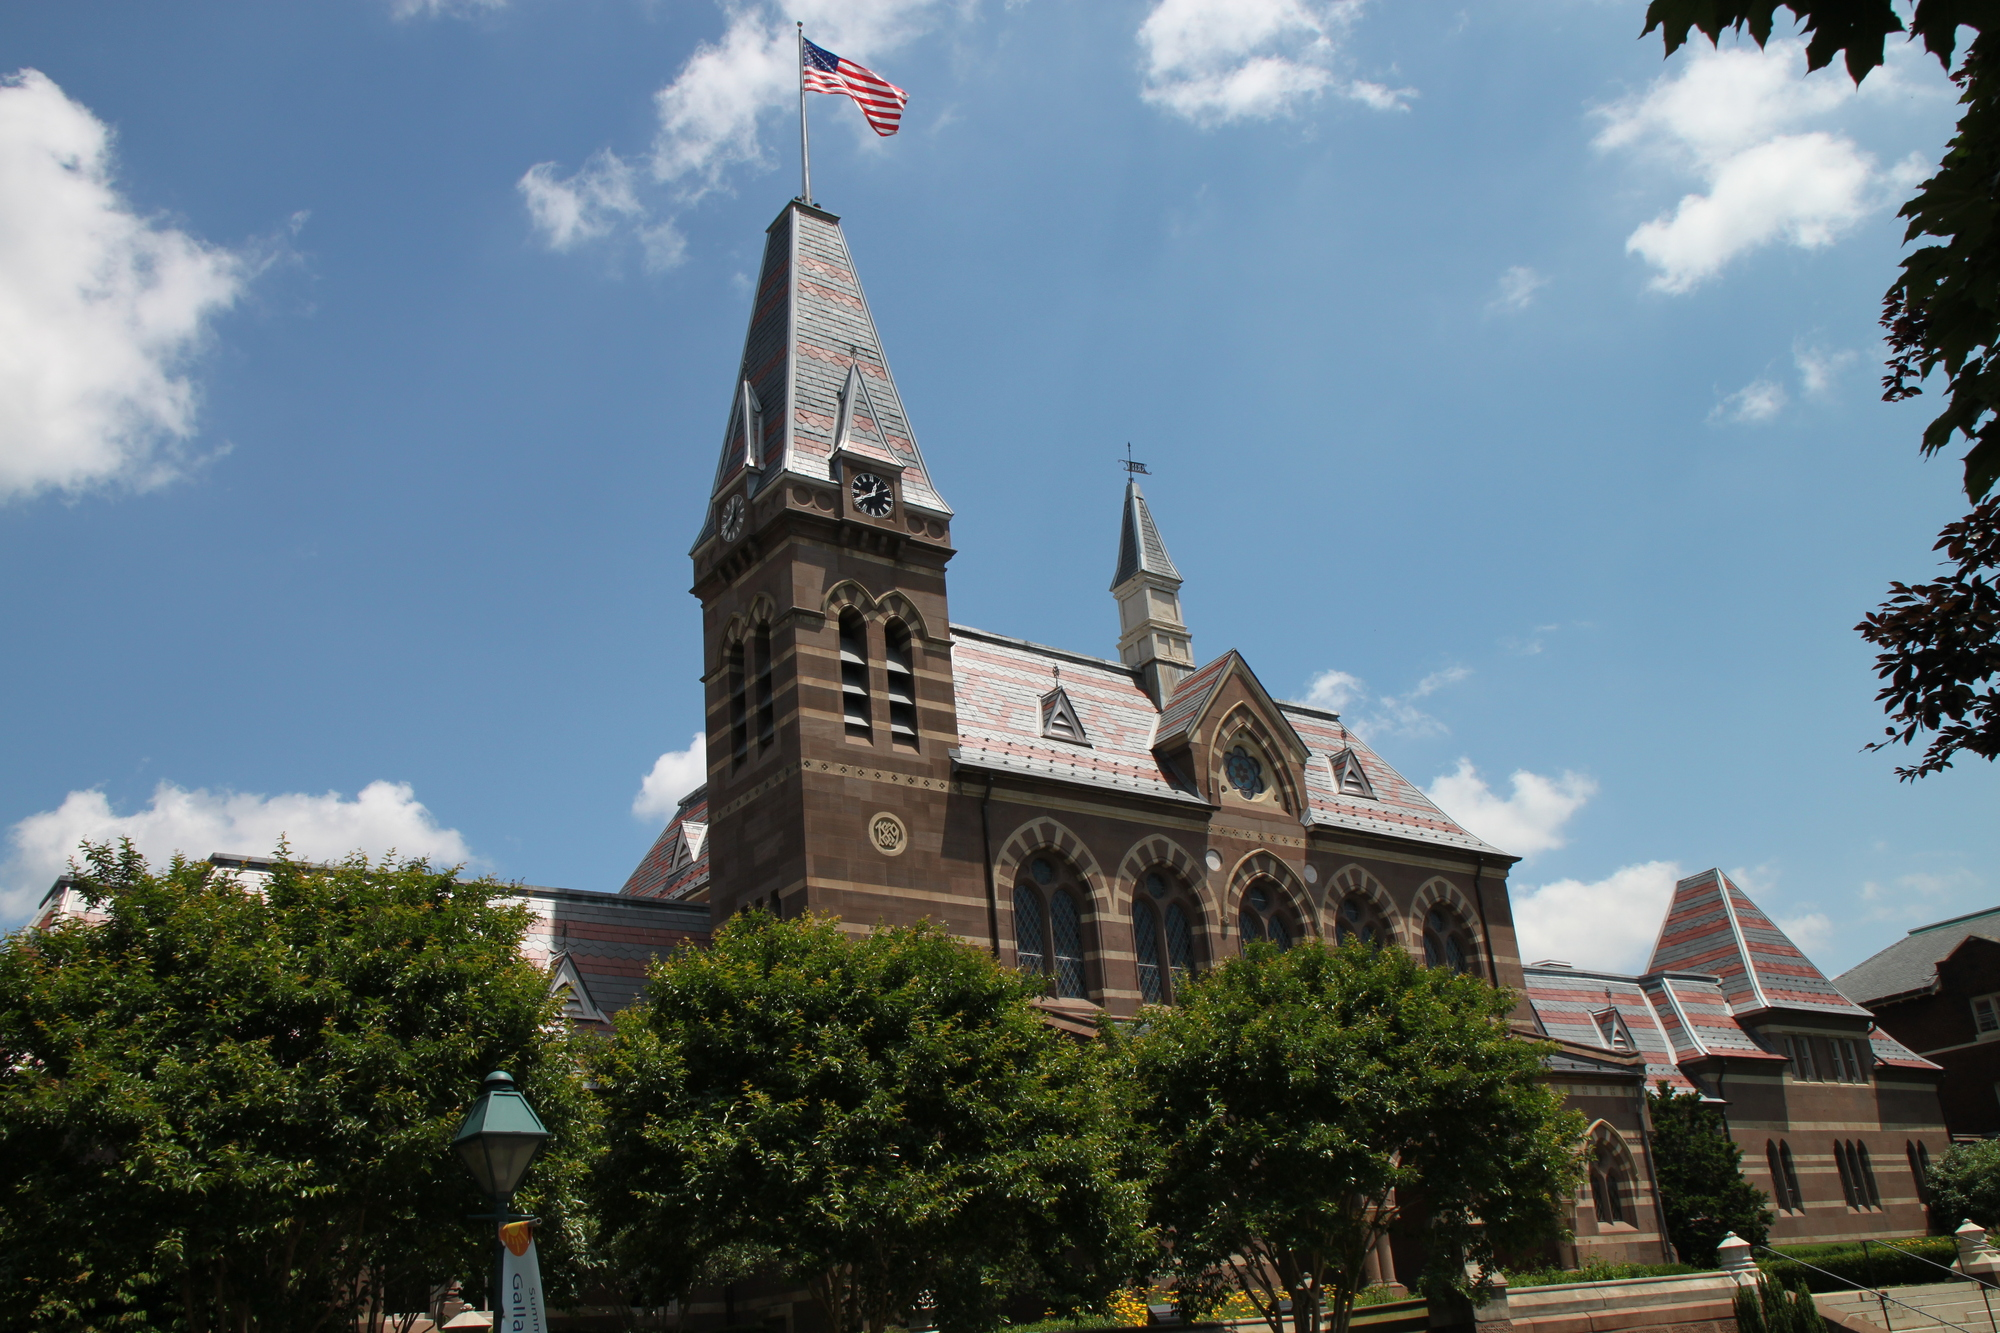 Gallaudet University Launches $60M Public Competition to ... - photo#9